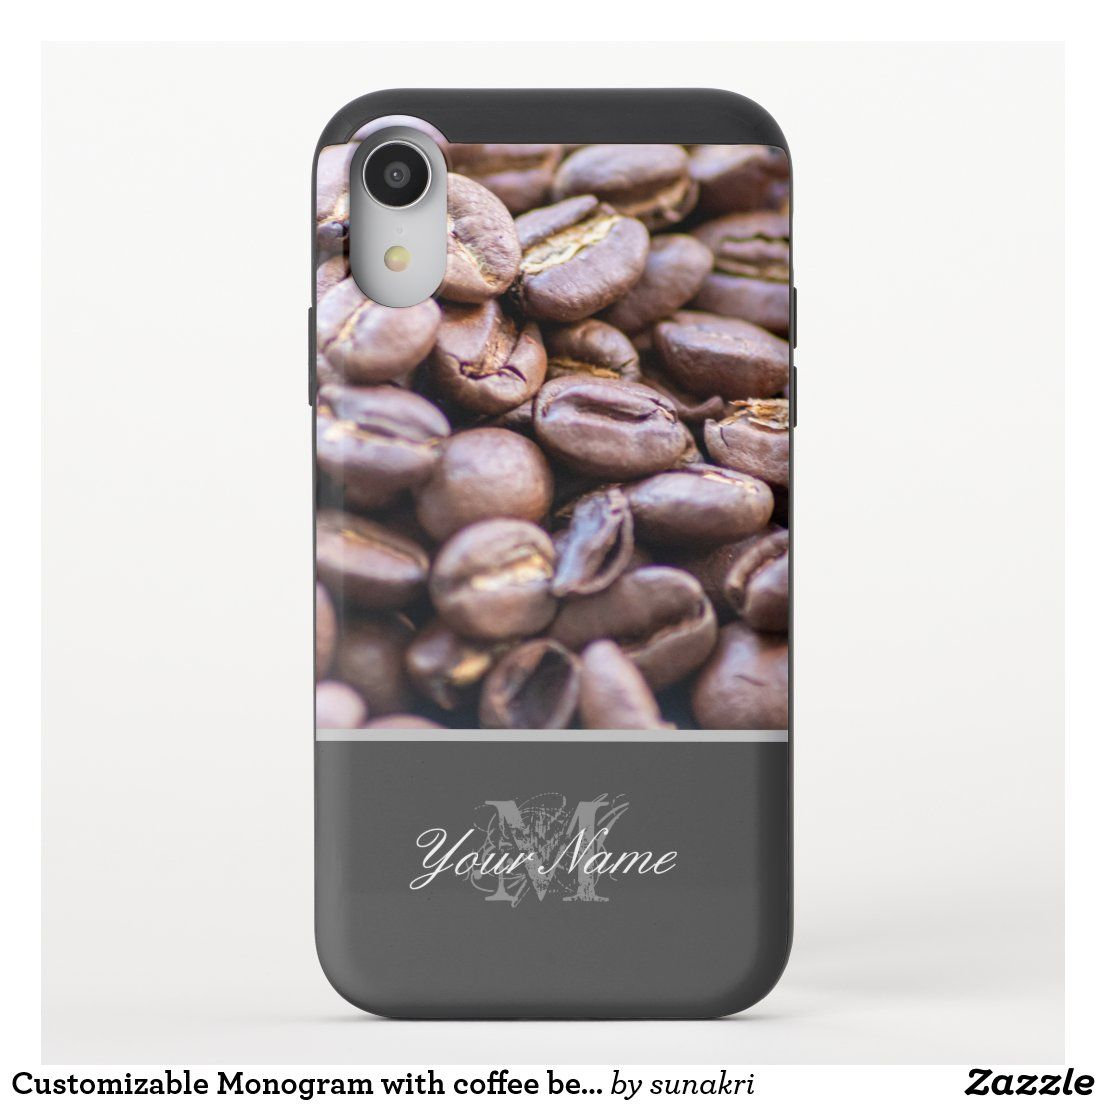 Customizable Monogram With Coffee Beans Uncommon Iphone Case Zazzle Com In 2020 Iphone Cases Iphone Wallet Phone Case